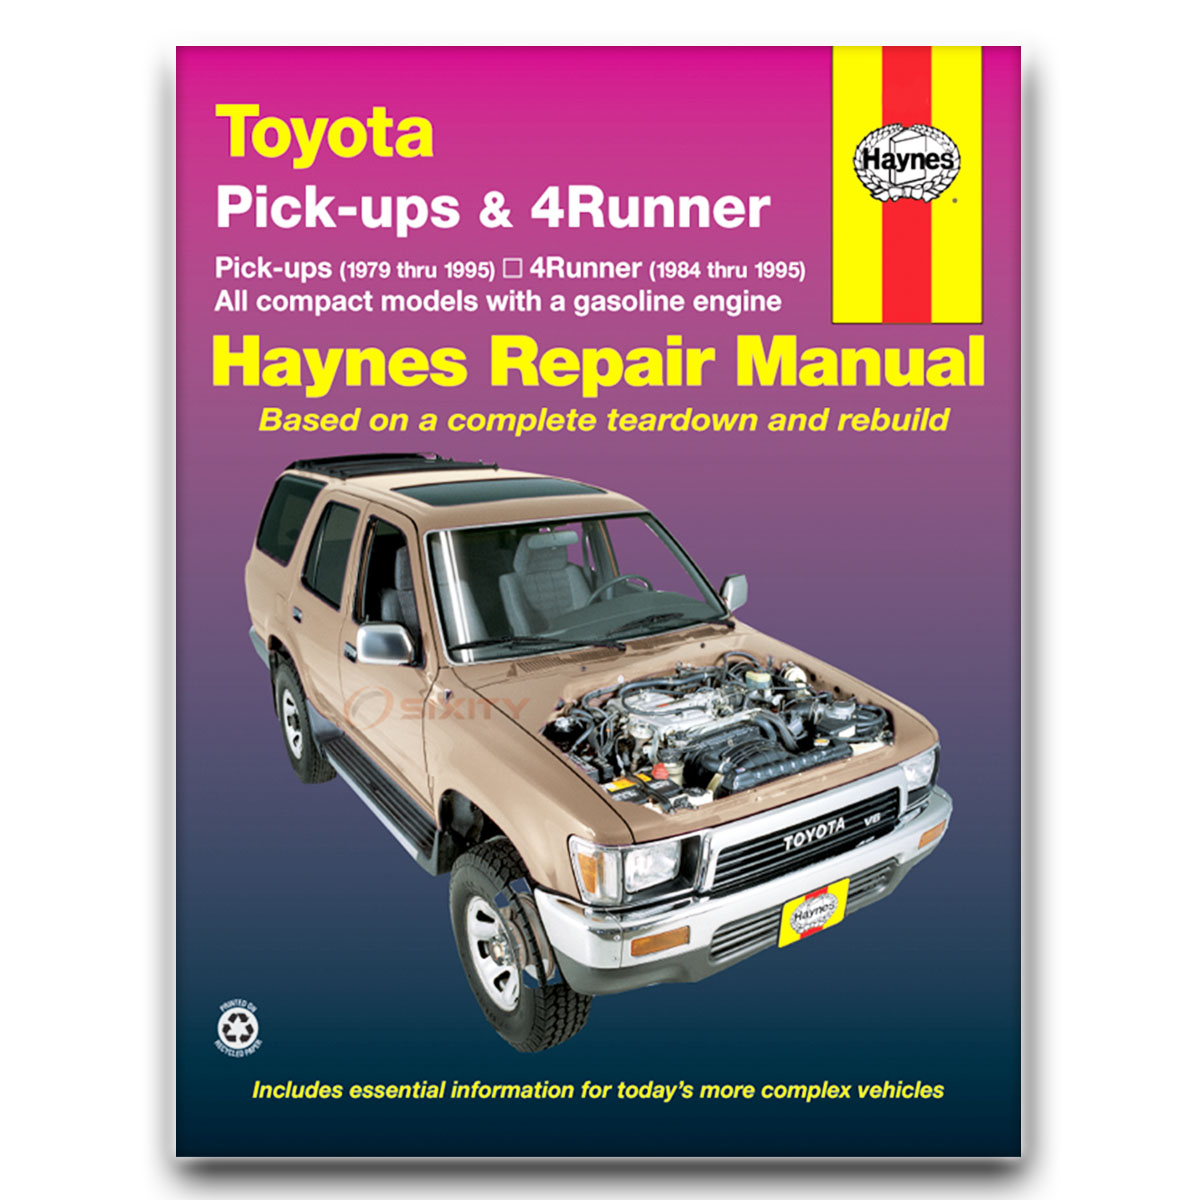 toyota 4runner haynes repair manual sr5 dlx shop service garage book rh ebay com 1995 toyota 4runner repair manual 1994 4Runner